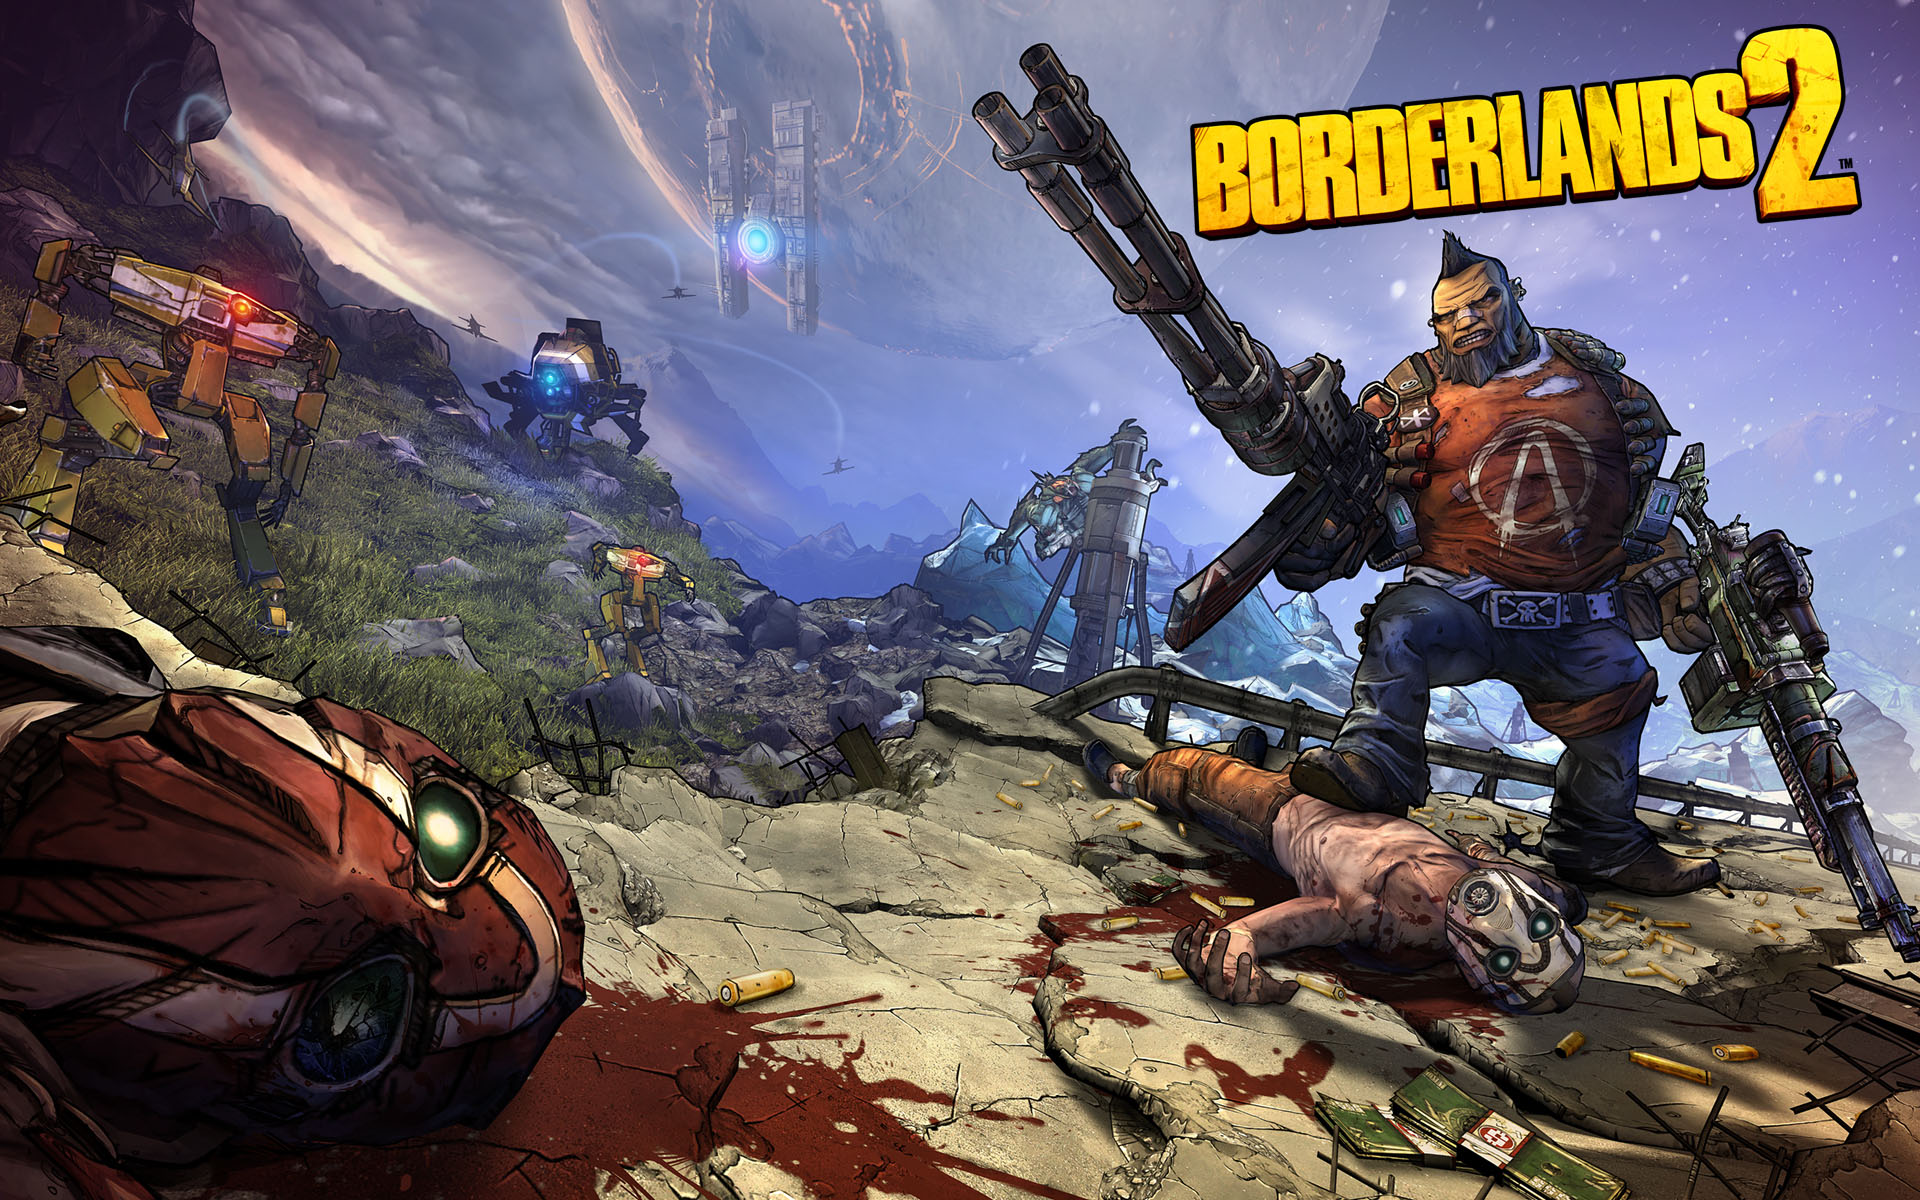 Borderlands 2 Wallpaper Hd Video Games Blogger